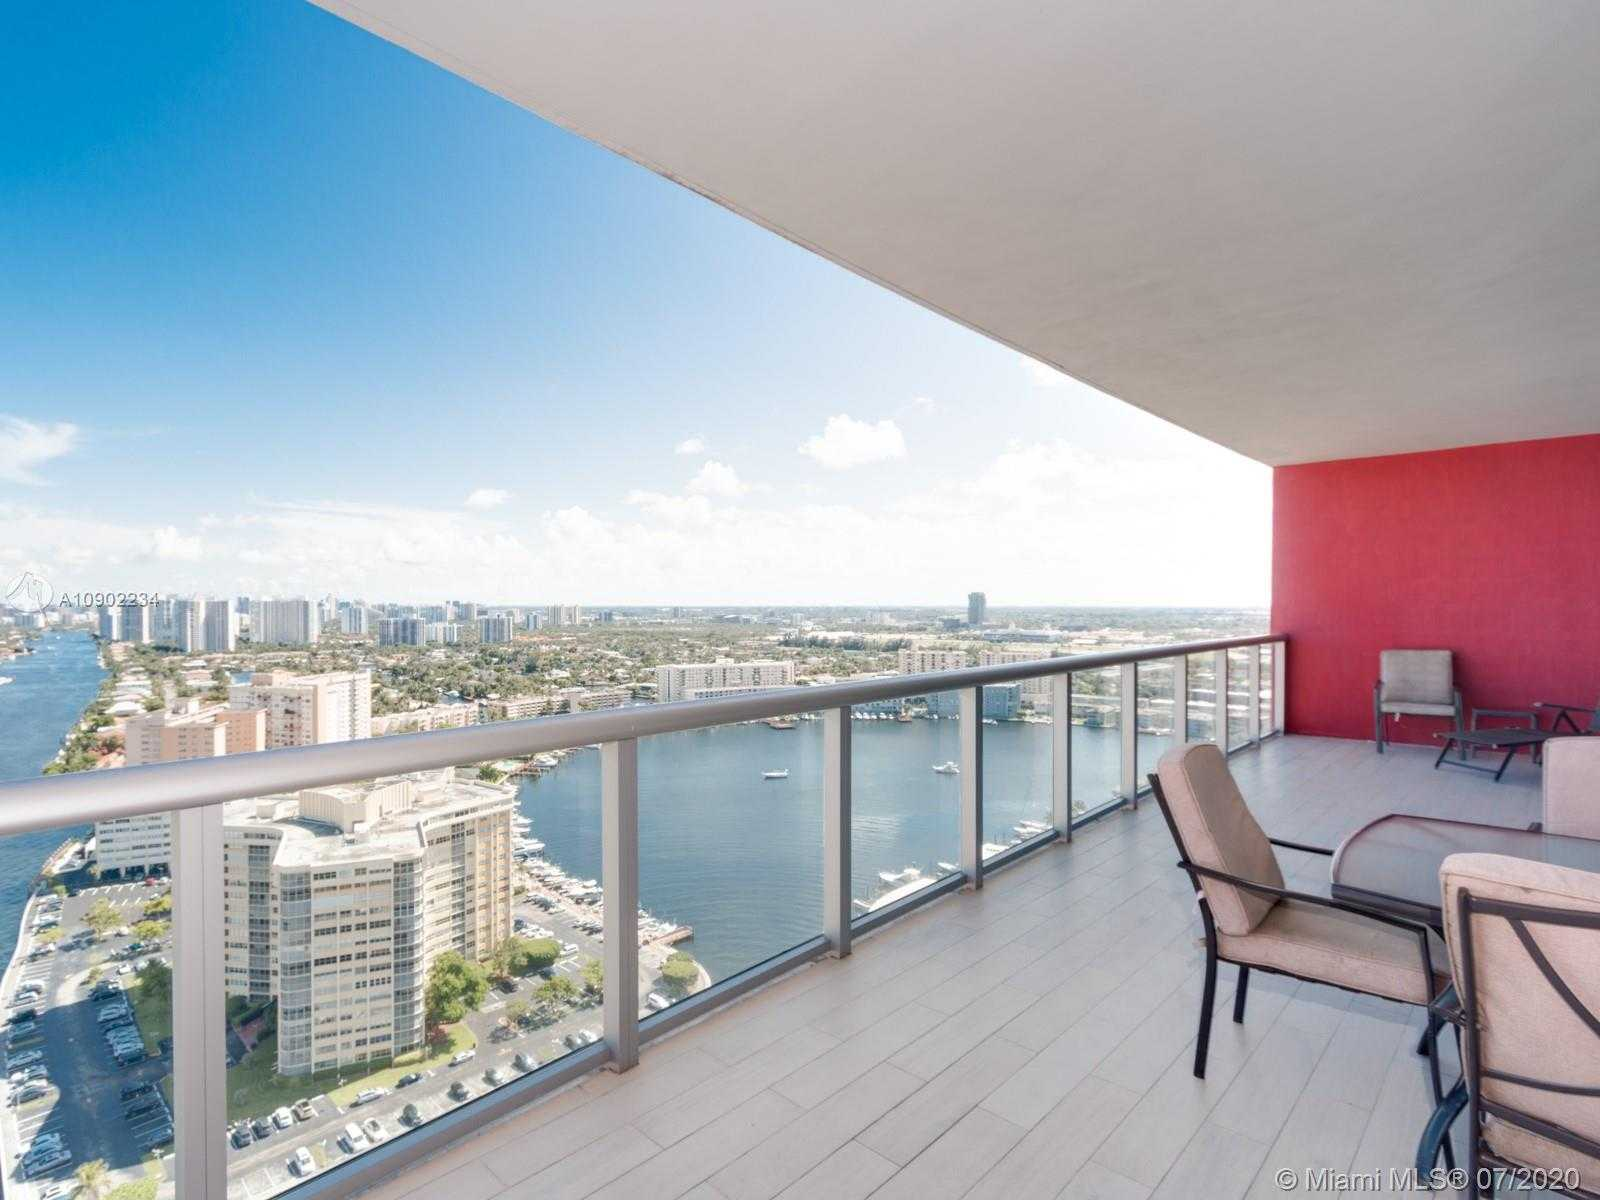 $575,000 - 2Br/2Ba -  for Sale in Beach Walk Hallandale, Hallandale Beach